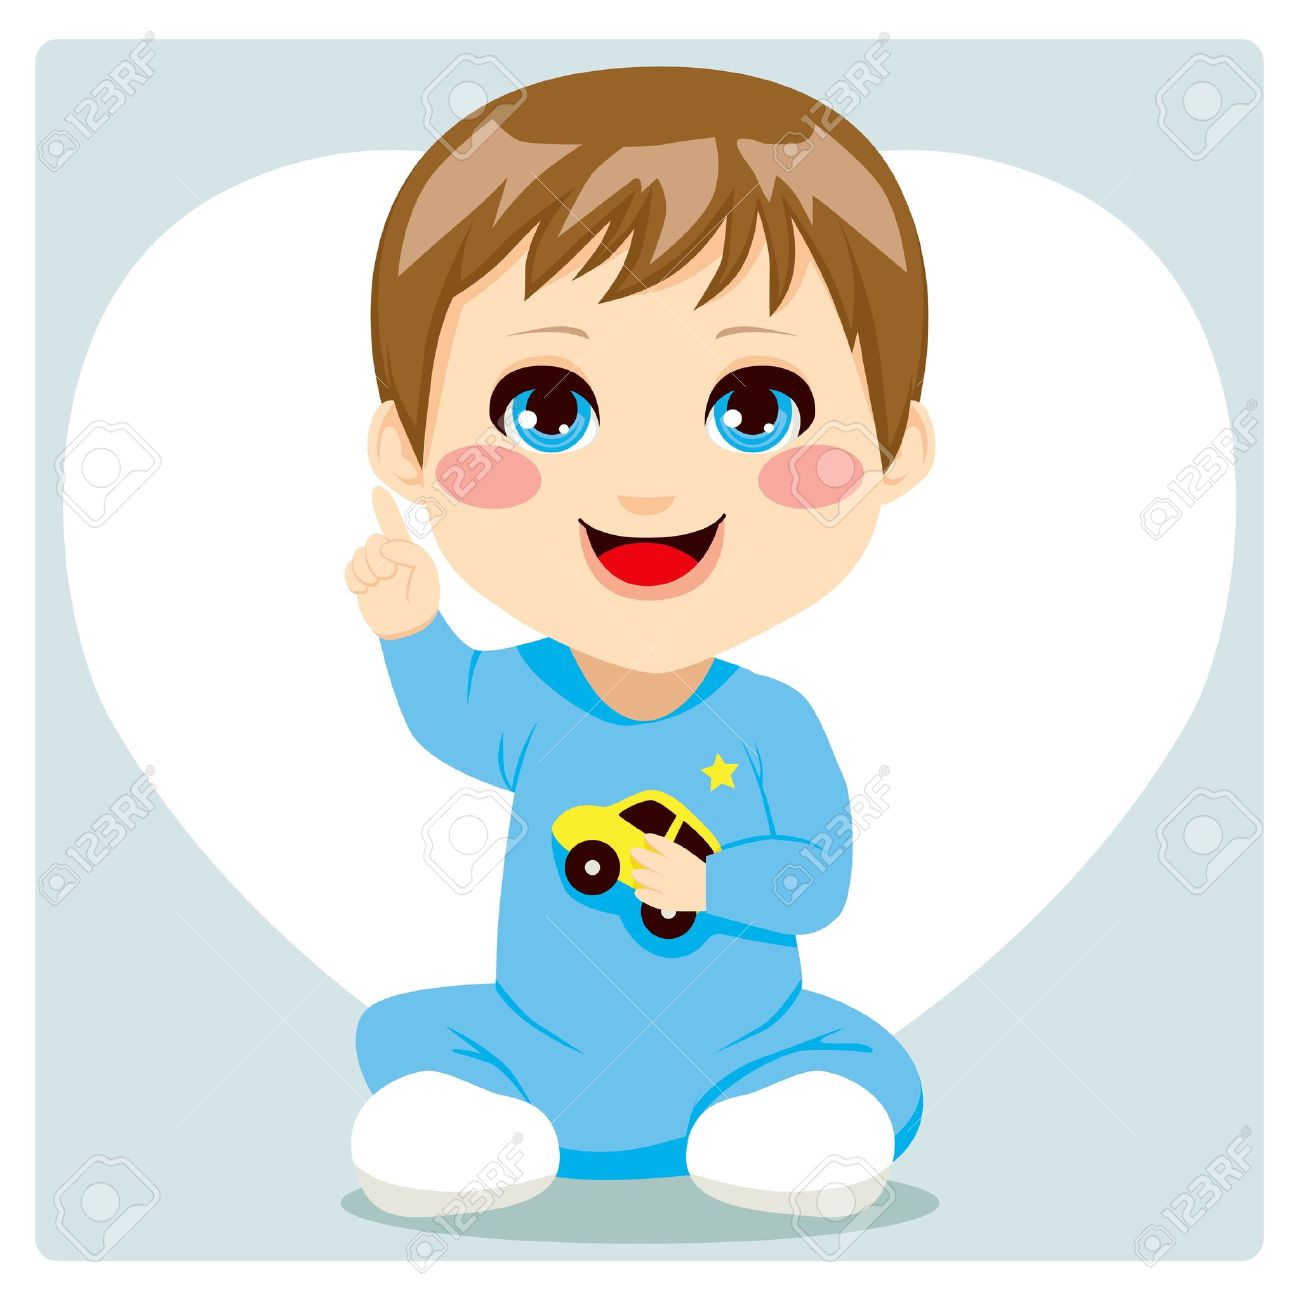 Cute smart little baby boy pointing index finger up having an idea and speaking Stock Vector - 15577951